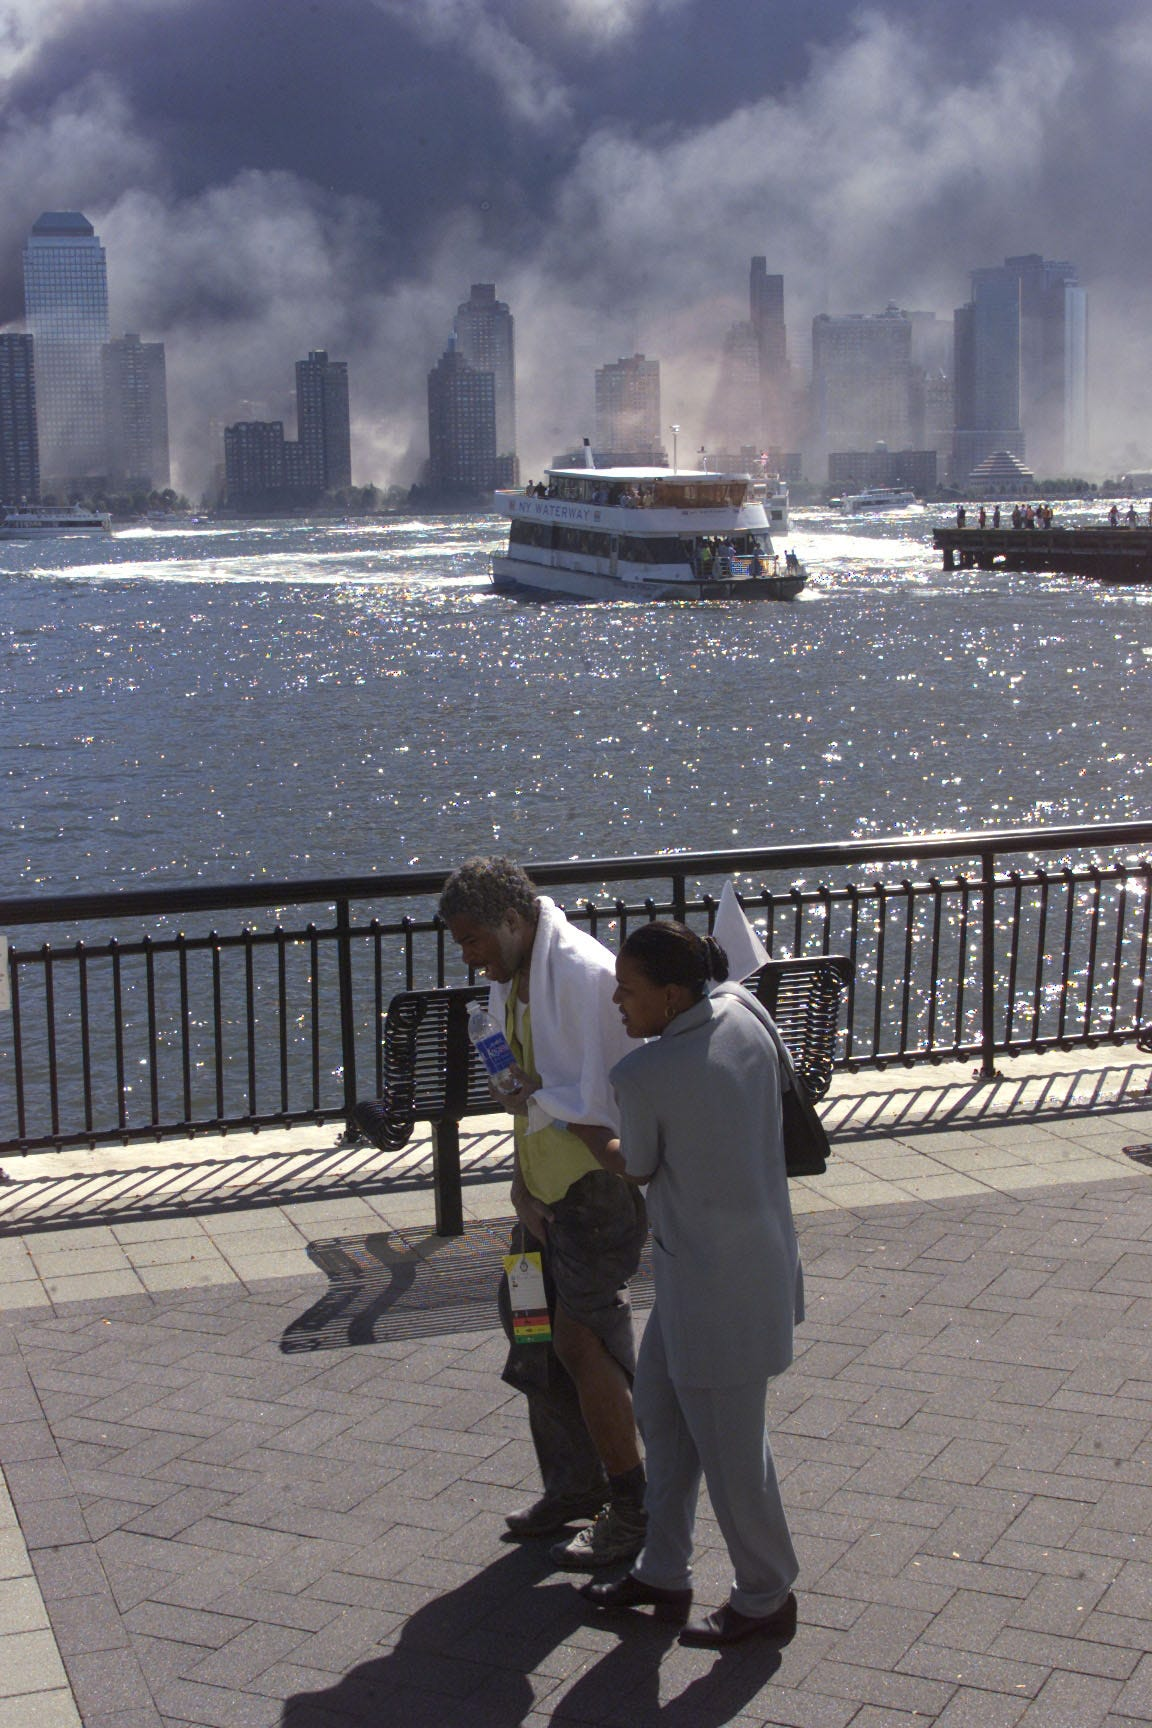 This photo was taken at Exchange Place in Jersey City, just across the Hudson River from the WTC on Sept. 11, 2001.